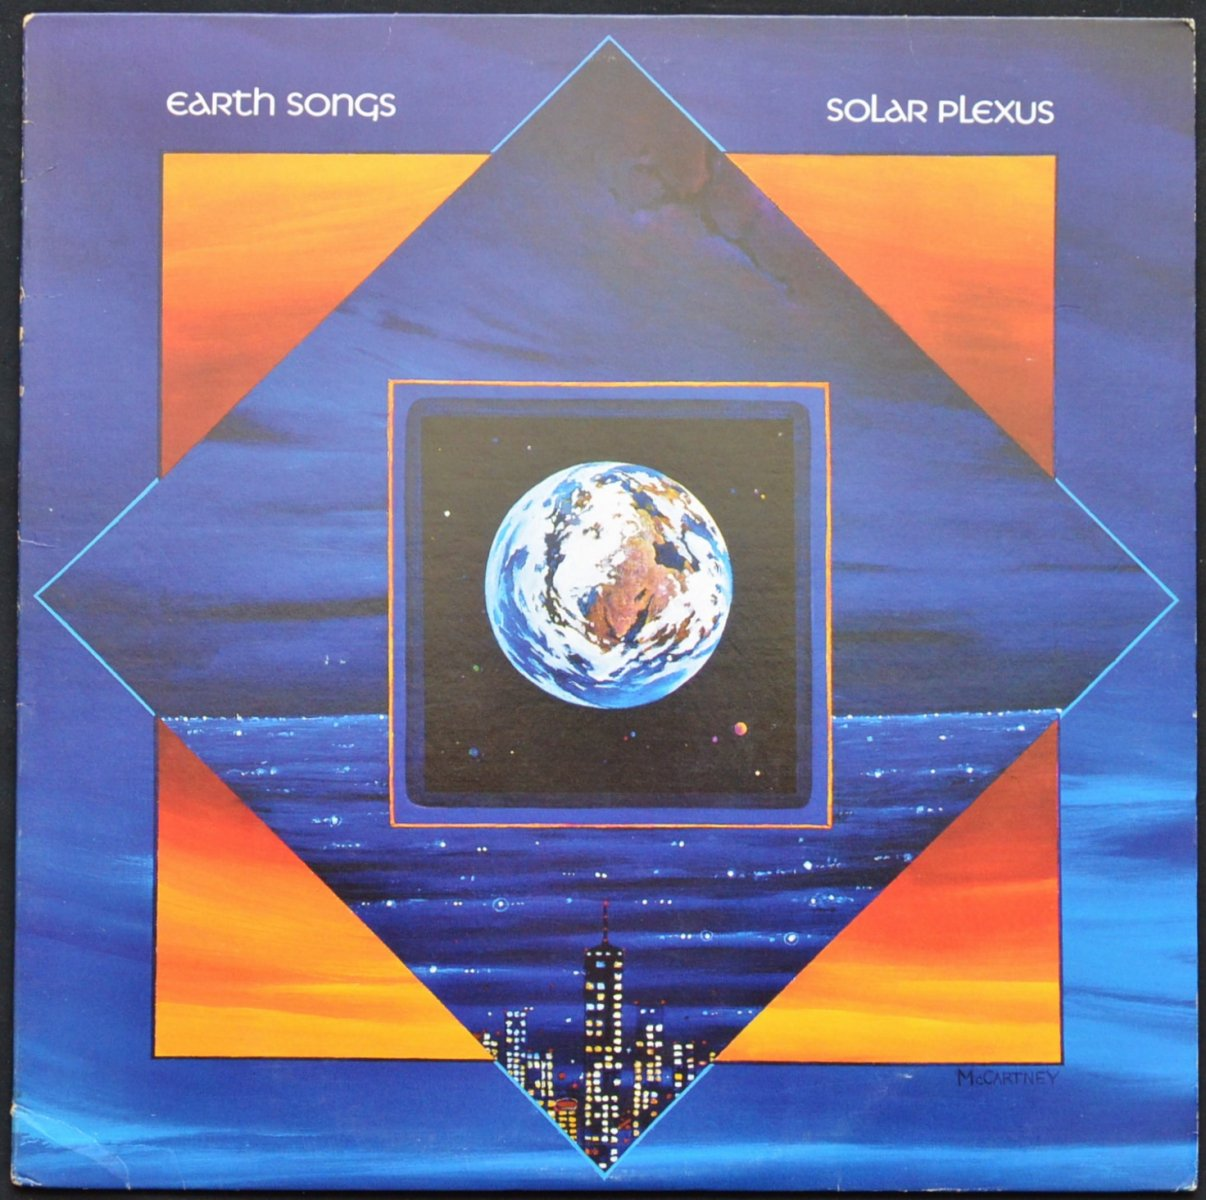 SOLAR PLEXUS / EARTH SONGS (LP)